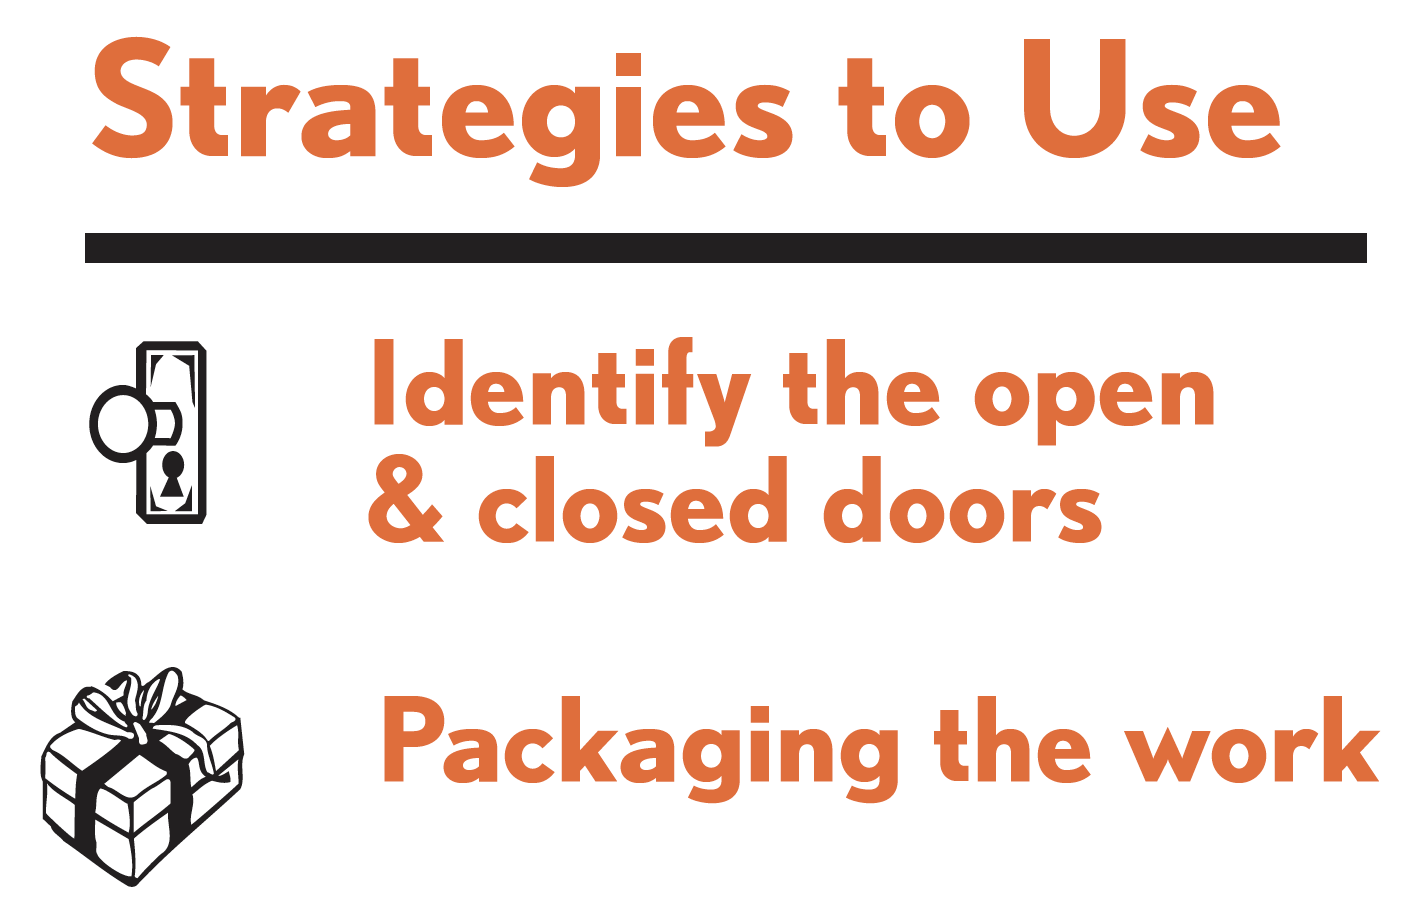 Picture of strategies to use for this tactic. Strategies include: identify the open and closed doors; and packaging the work.